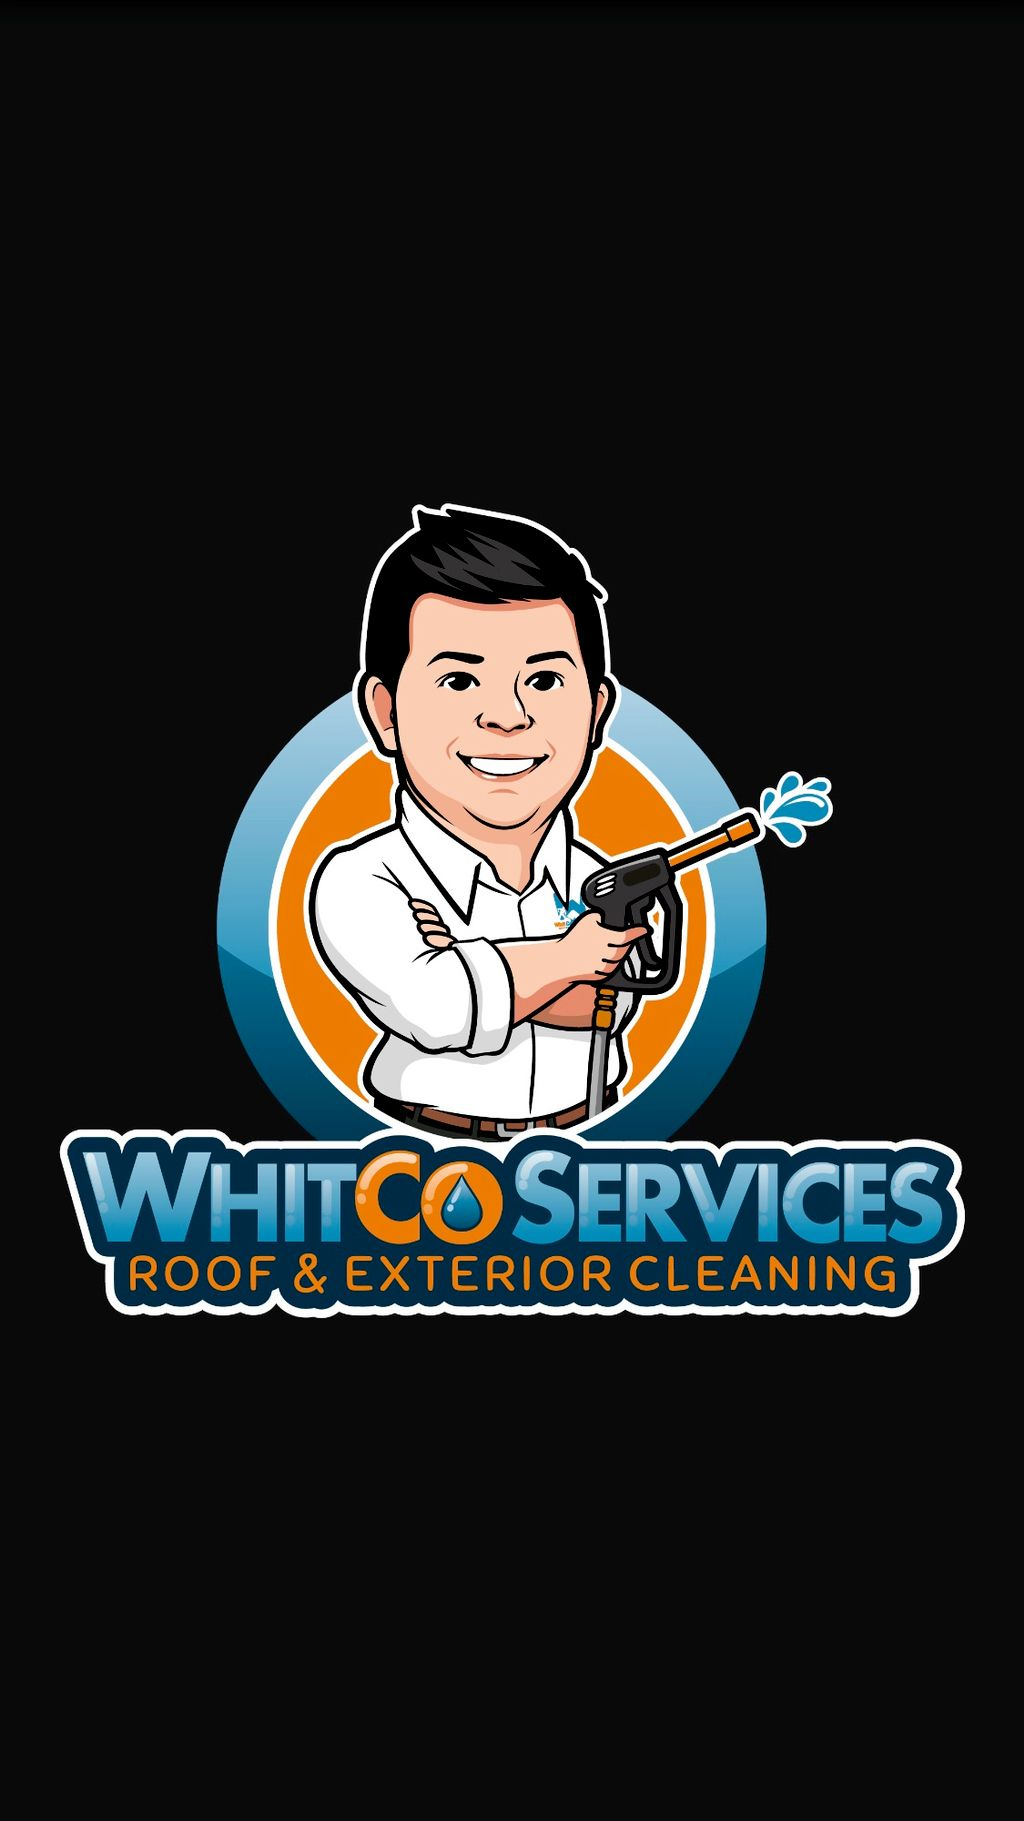 WhitCo Services - Roof & Exterior Cleaning